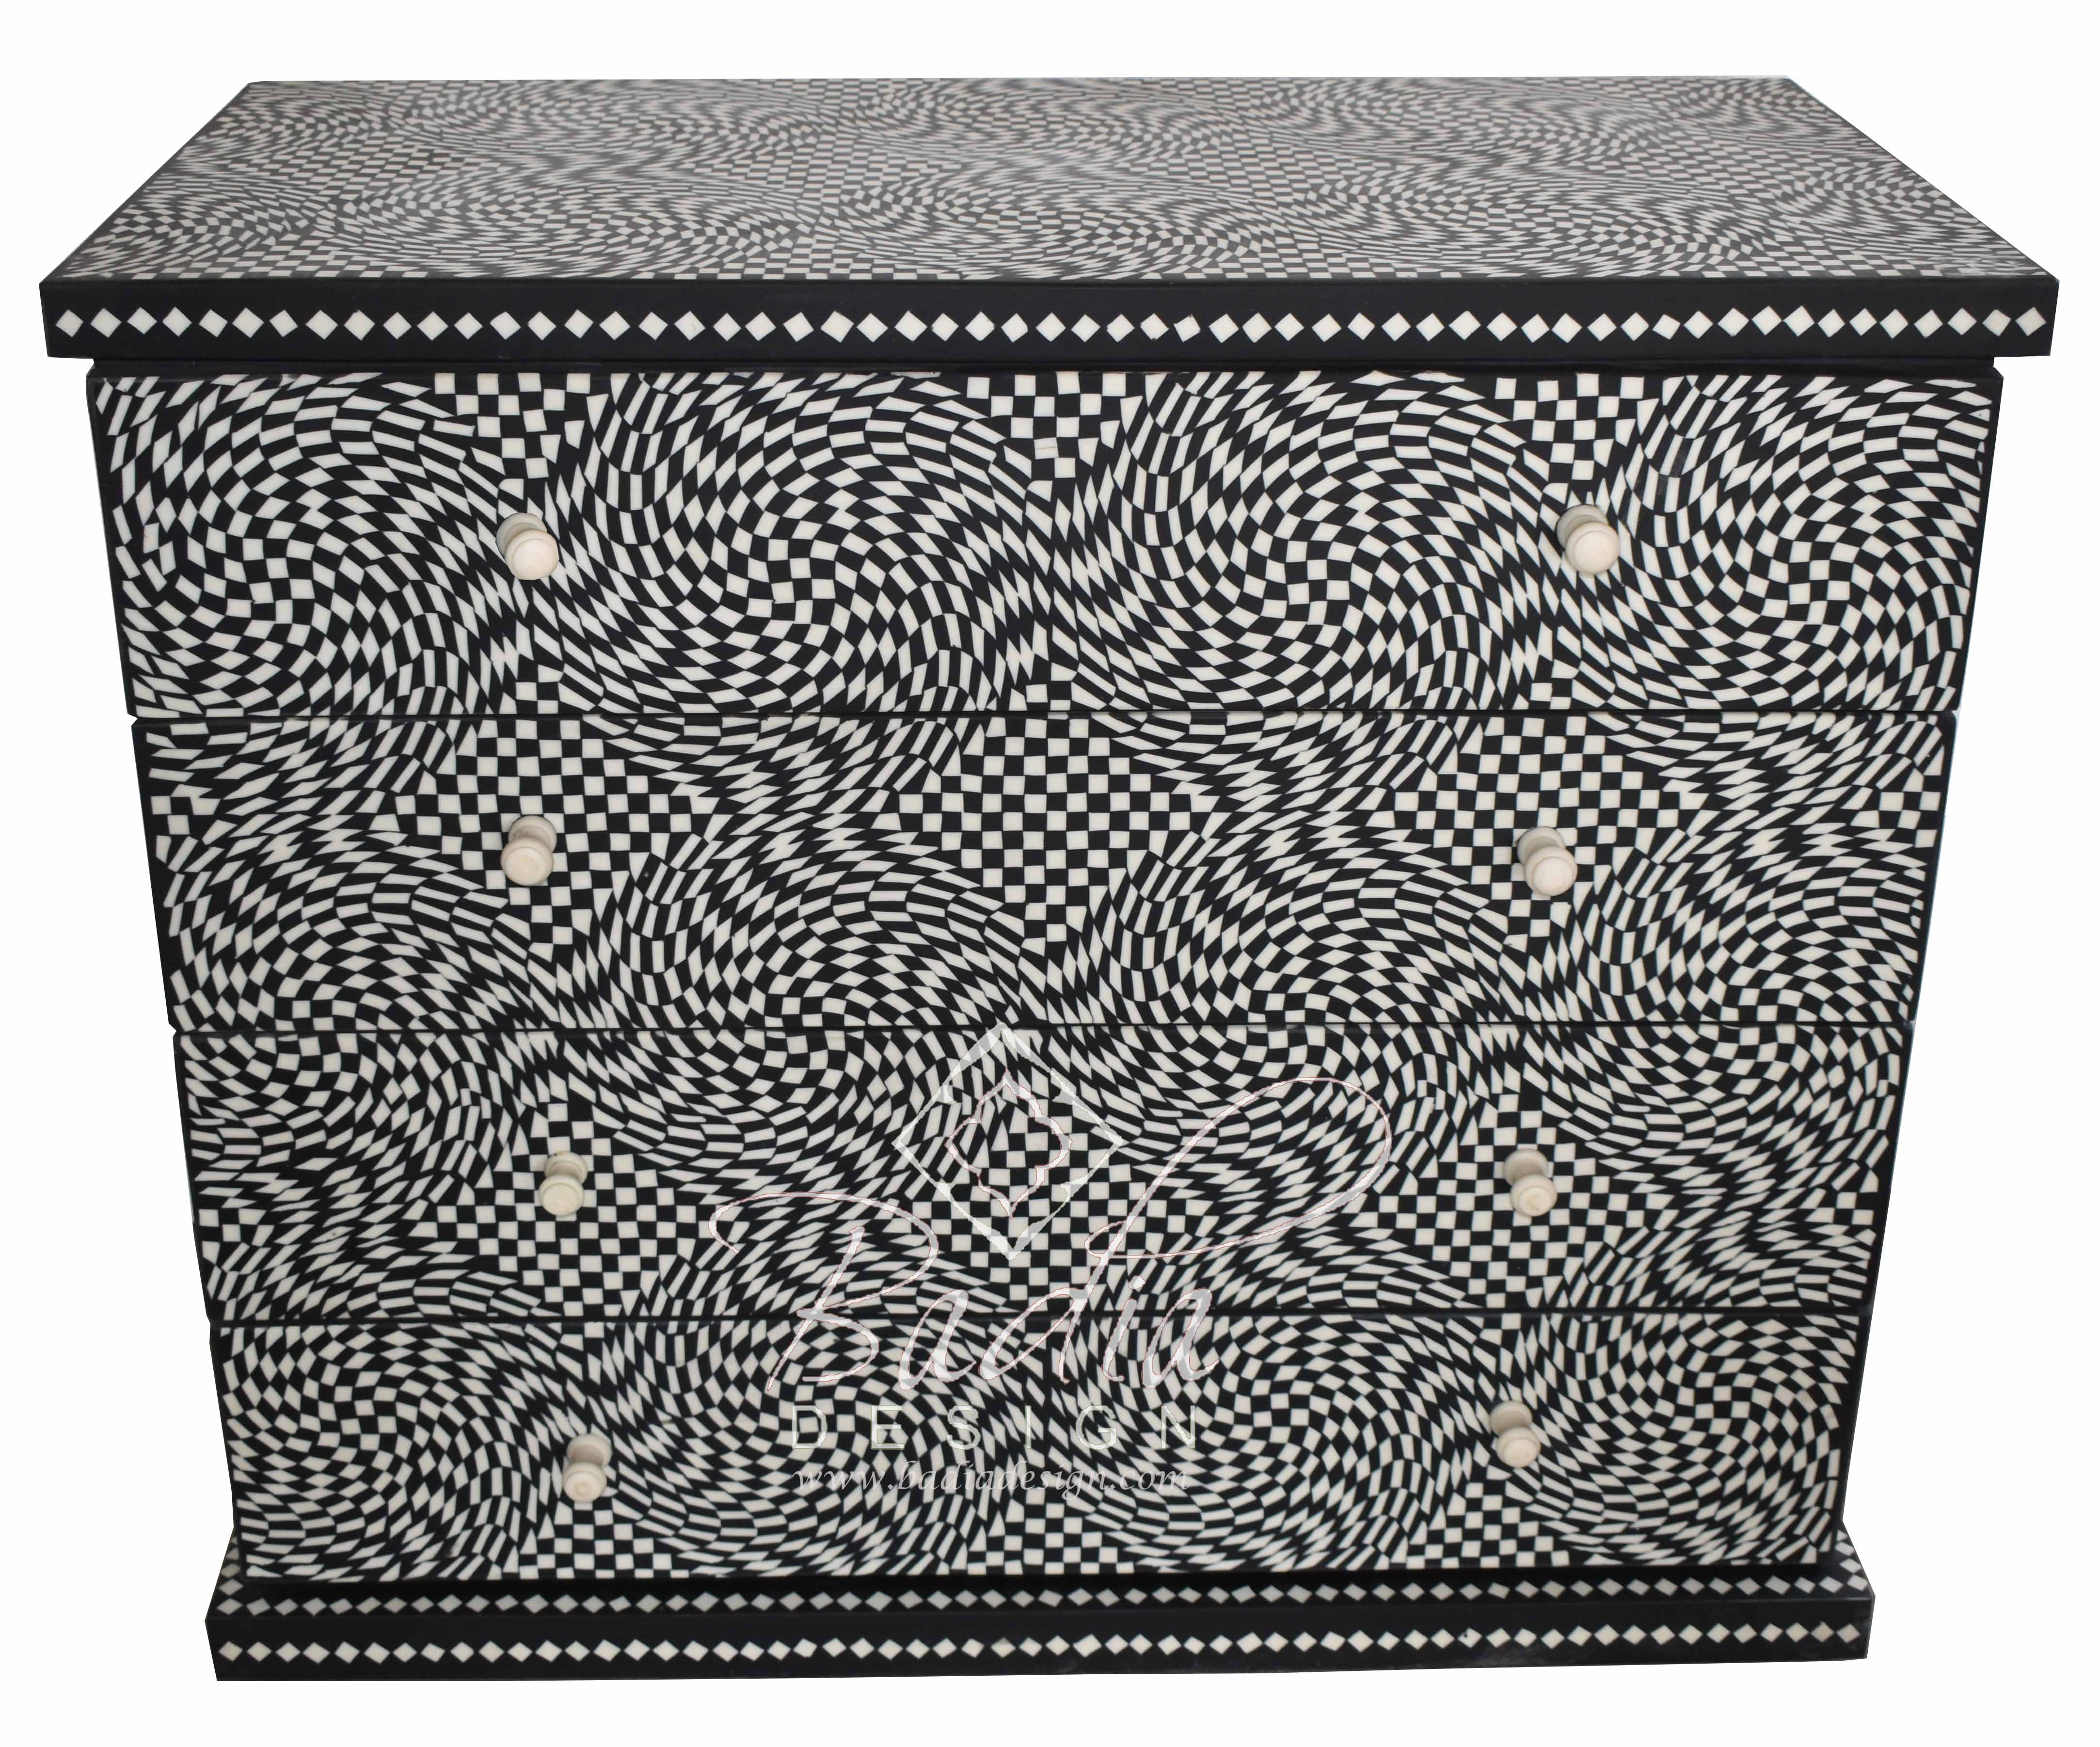 moroccan-black-and-white-bone-inlay-dresser-mop-dr061-1.jpg